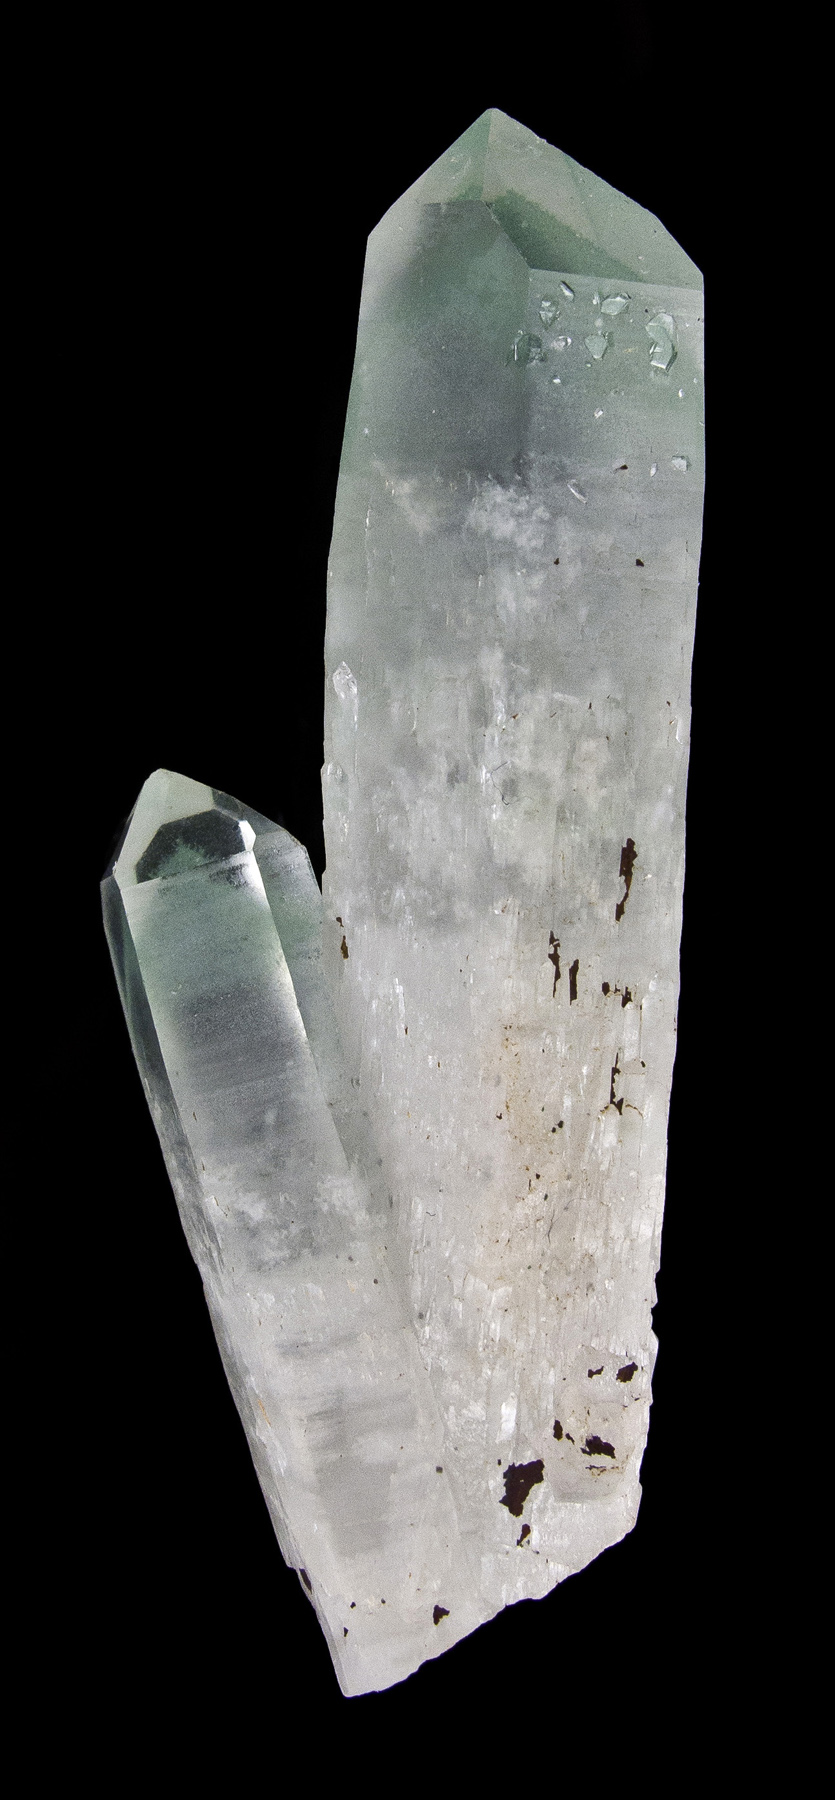 Two aesthetic lustrous translucent gemmy colorless quartz crystals